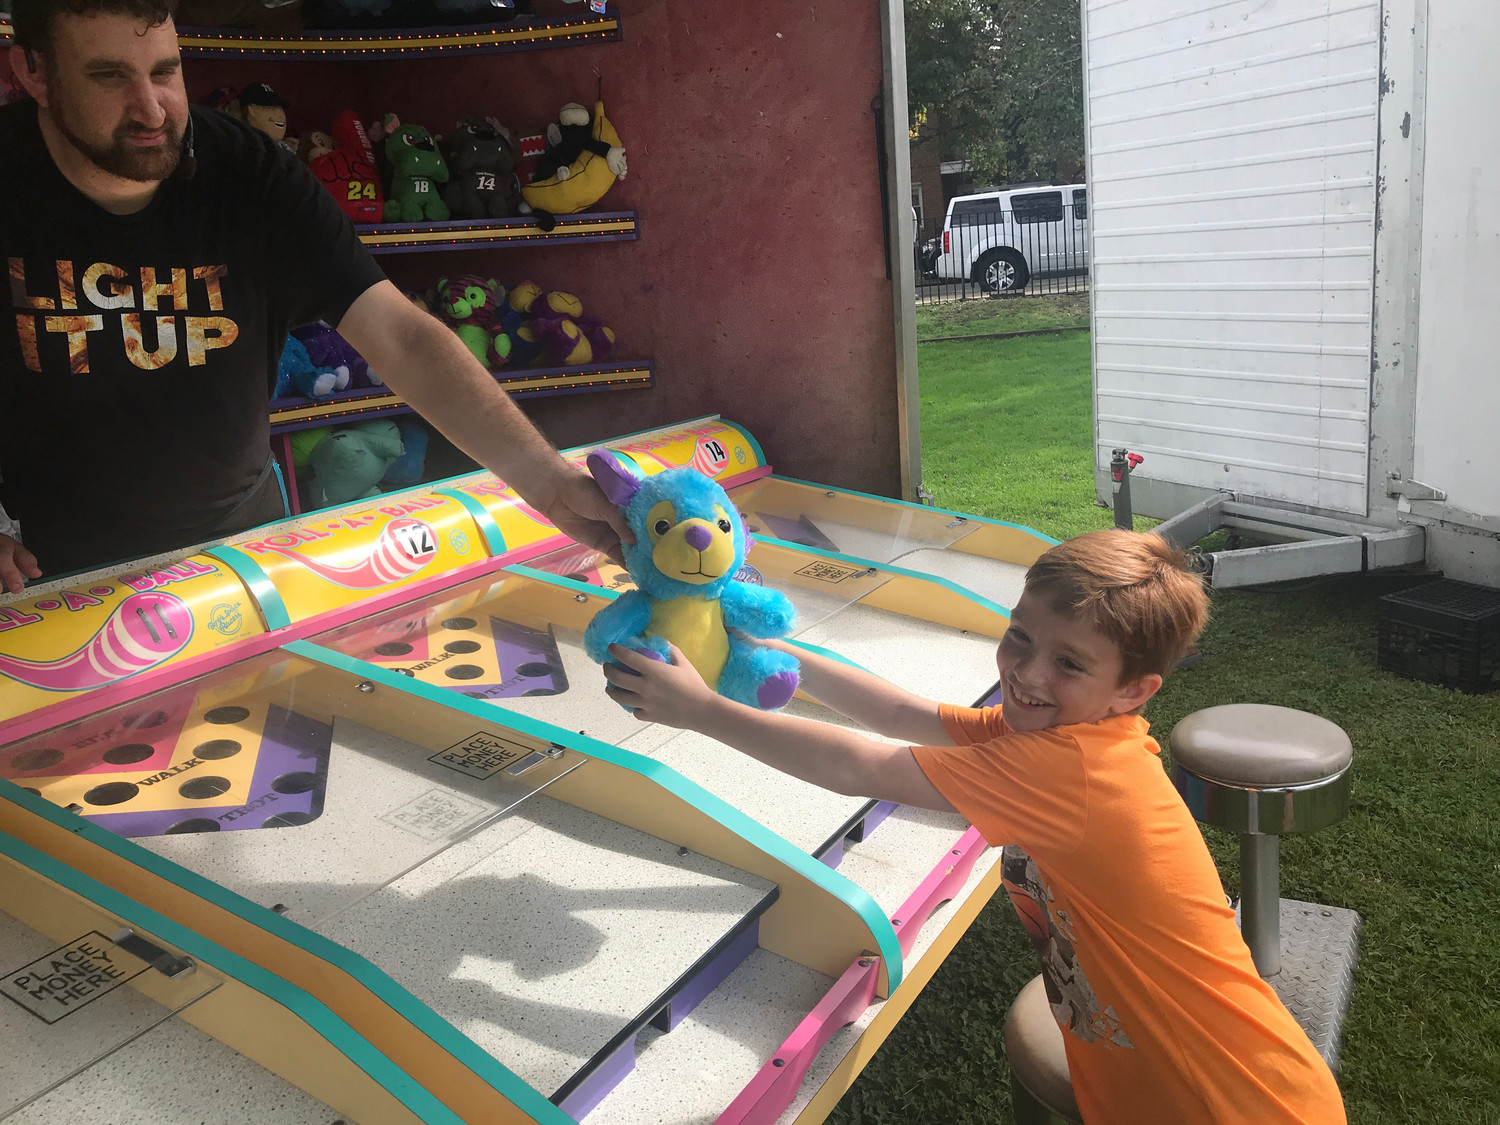 Thomas Murgolo, 9, lit up the Roll-A-Ball game at the Community Chest South Shore fair last Saturday, and walked away with a prize.